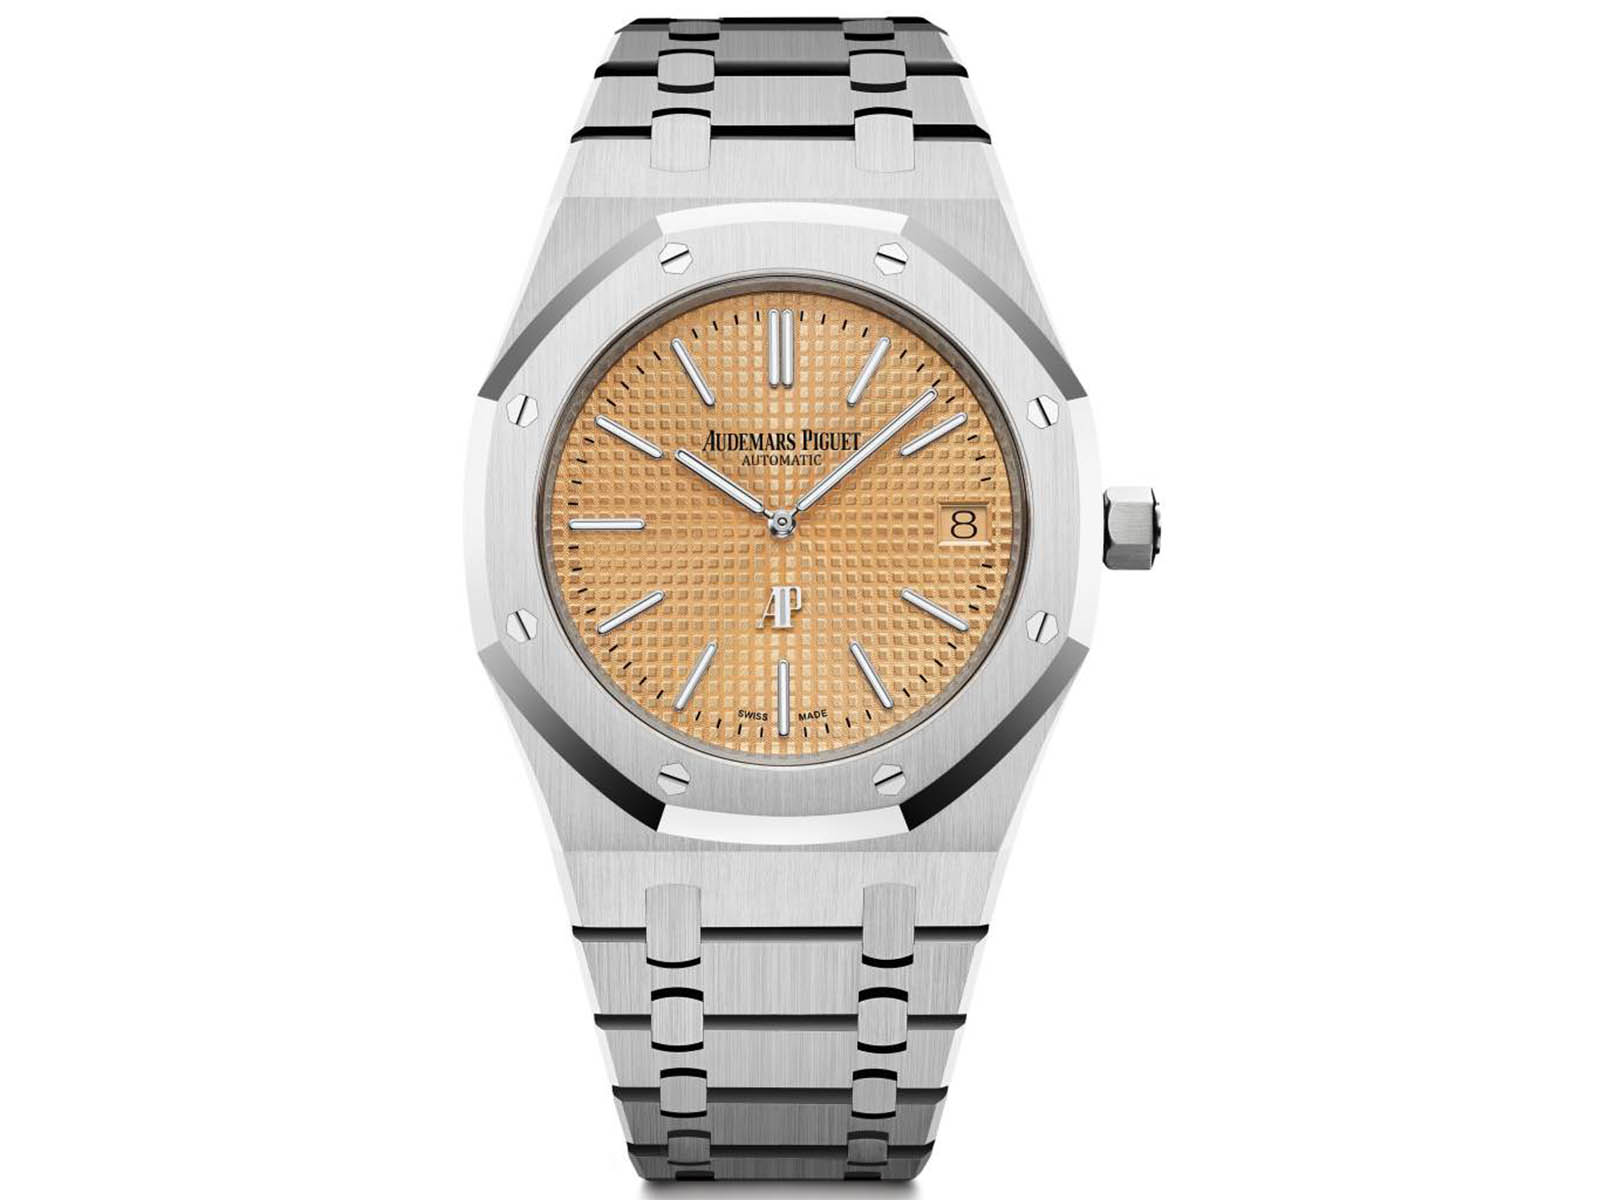 audemars-piguet-royal-oak-jumbo-extra-thin.jpg